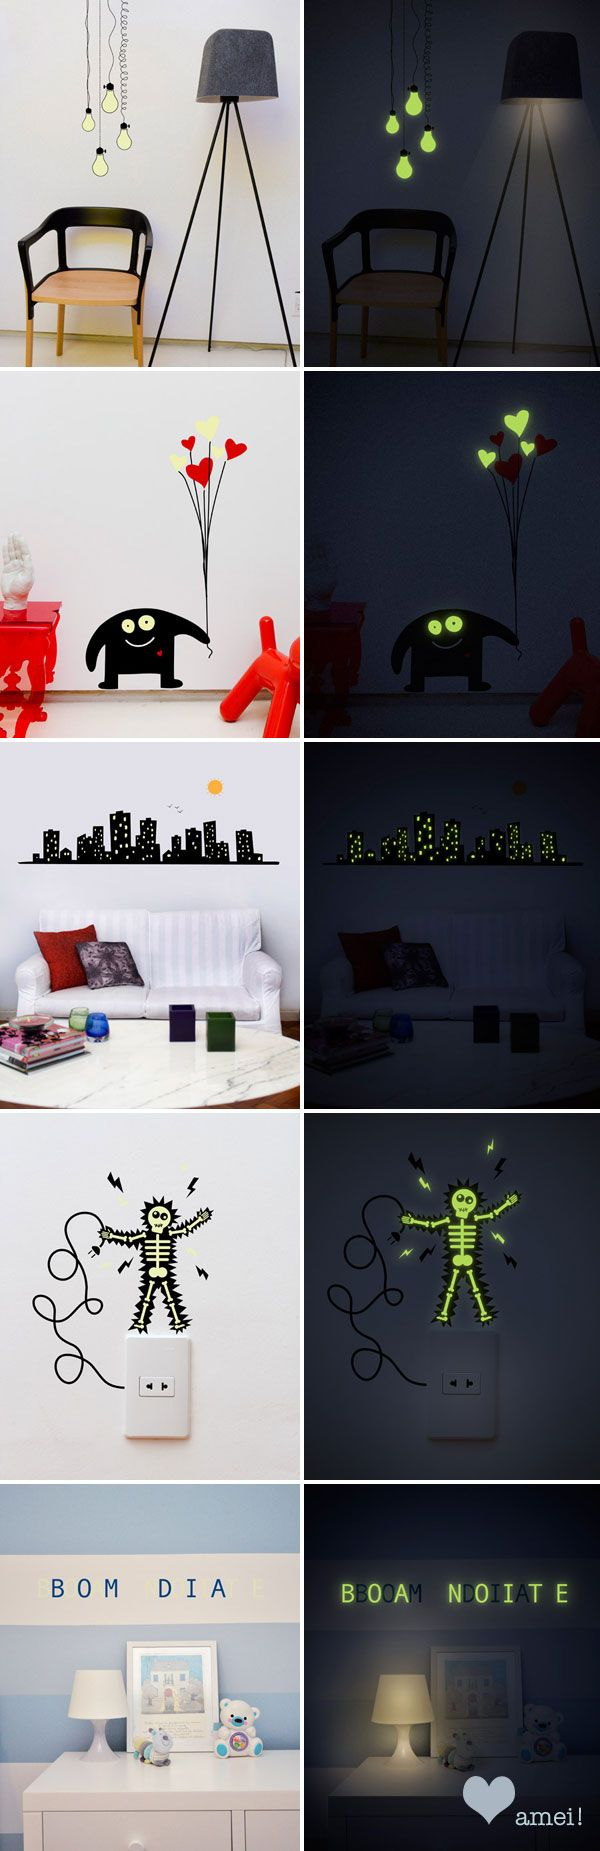 Cool wall stickers But one can recreate this with glow in the dark paint.  With the paint be sure to mark the areas you want to have glow and then paint the rest of the picture with regular paint!